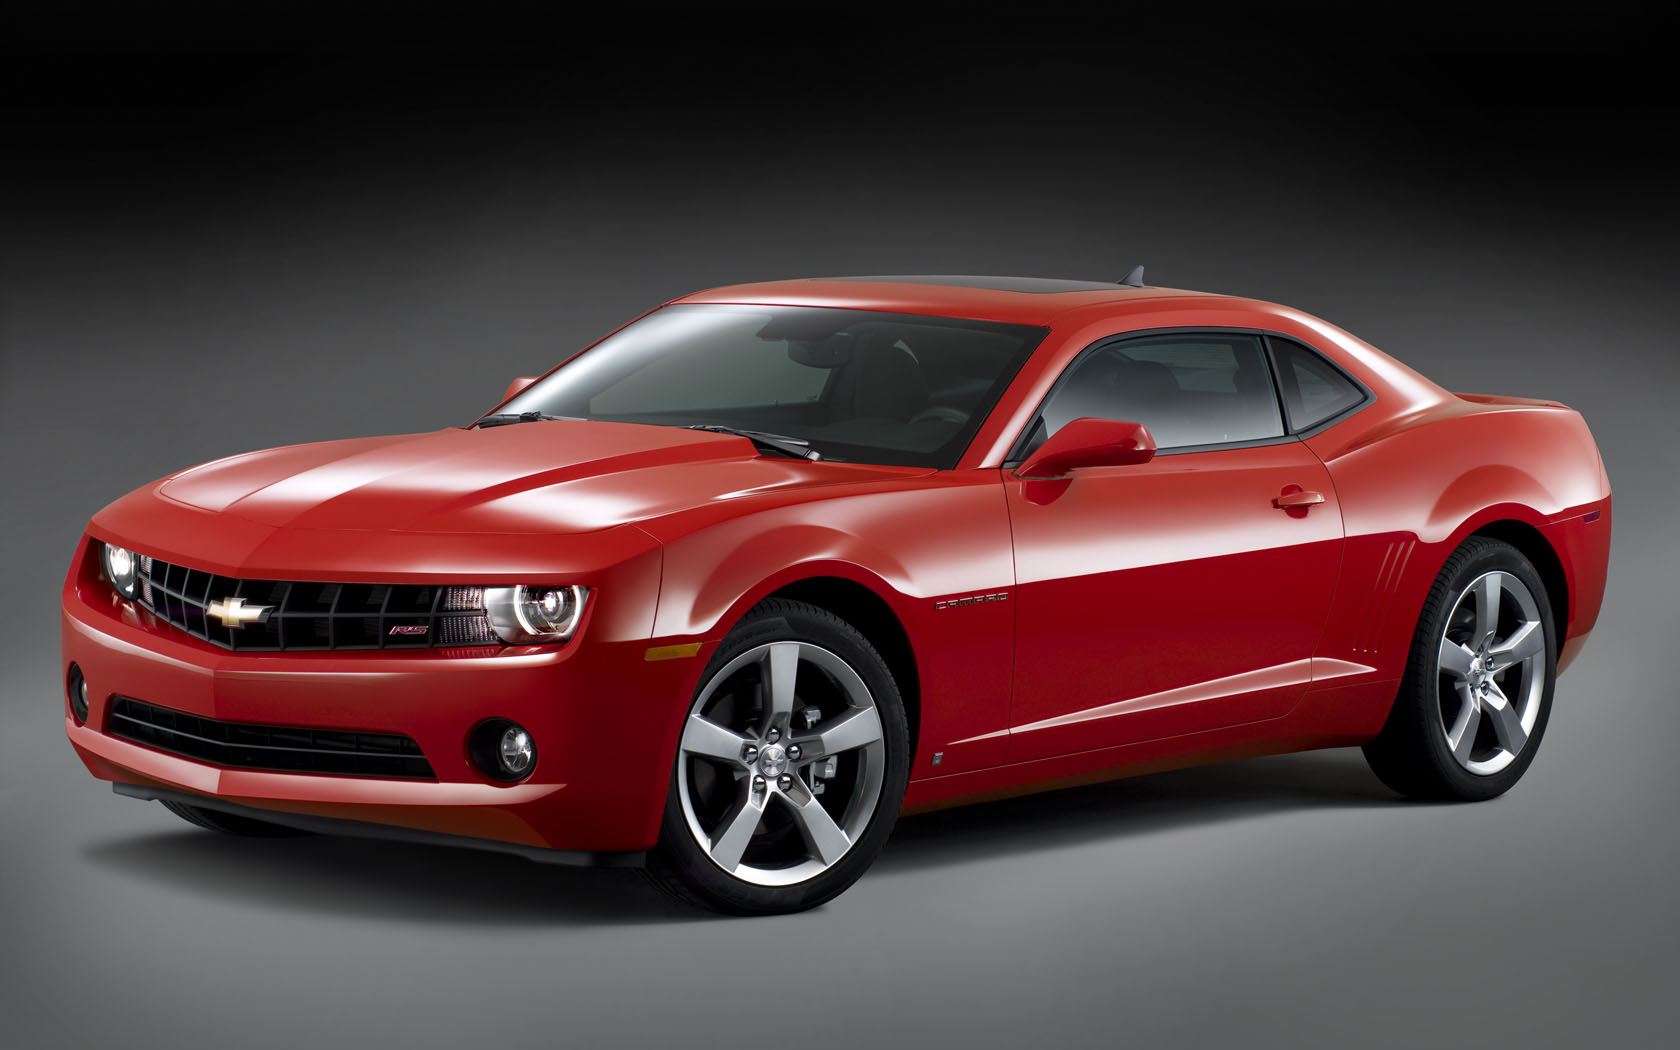 Red Chevy Camaro Wallpaper 4128 Hd Wallpapers in Cars   Imagescicom 1680x1050